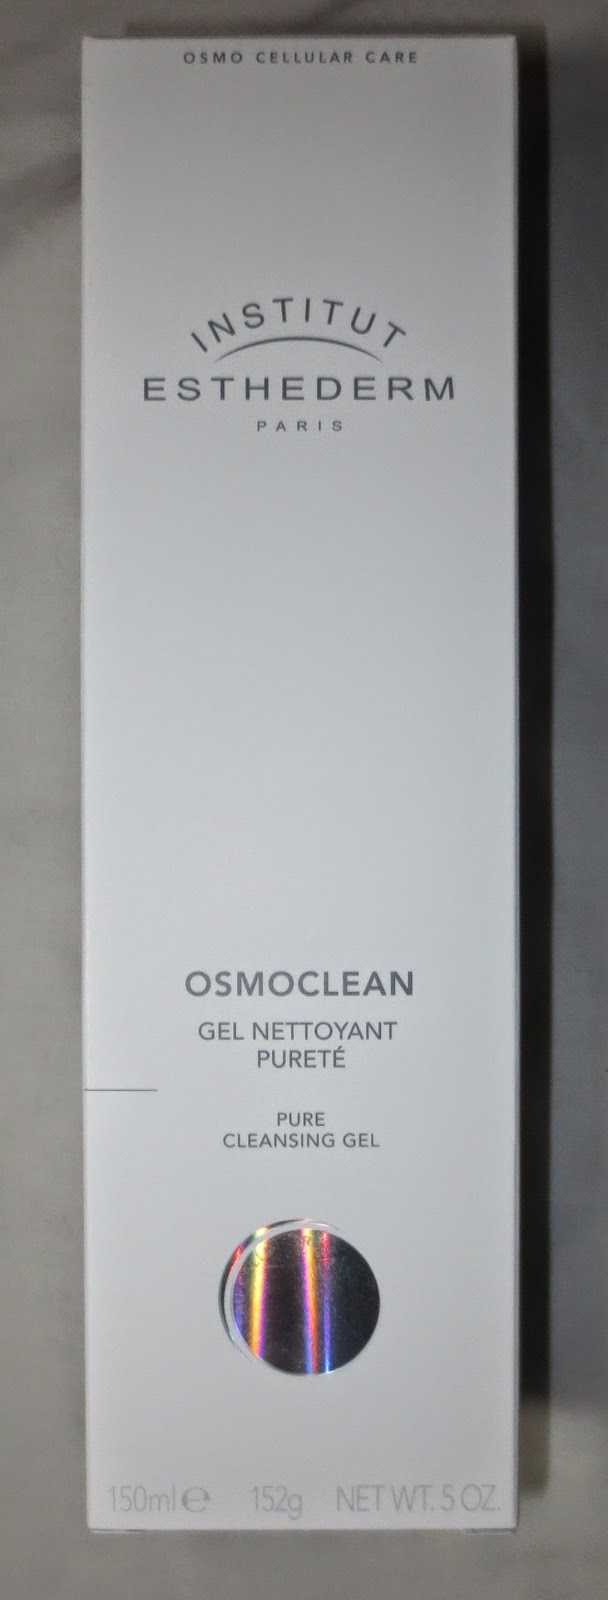 Institut Esthederm Osmoclean Pure Cleansing Gel Packaging